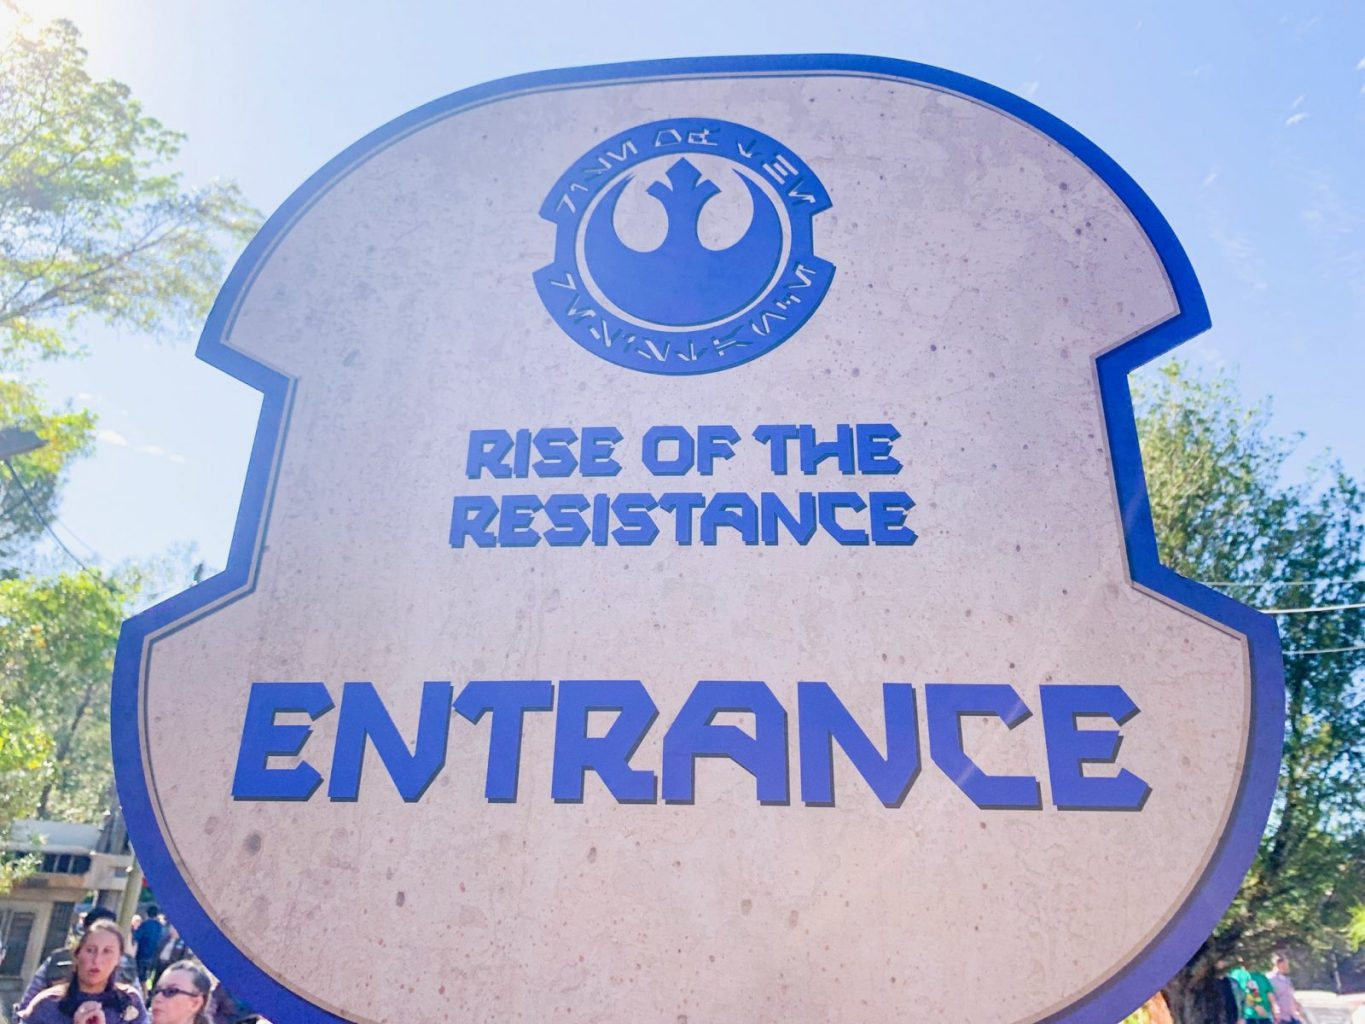 Sign for Star Wars Rise Of The Resistance entrance line